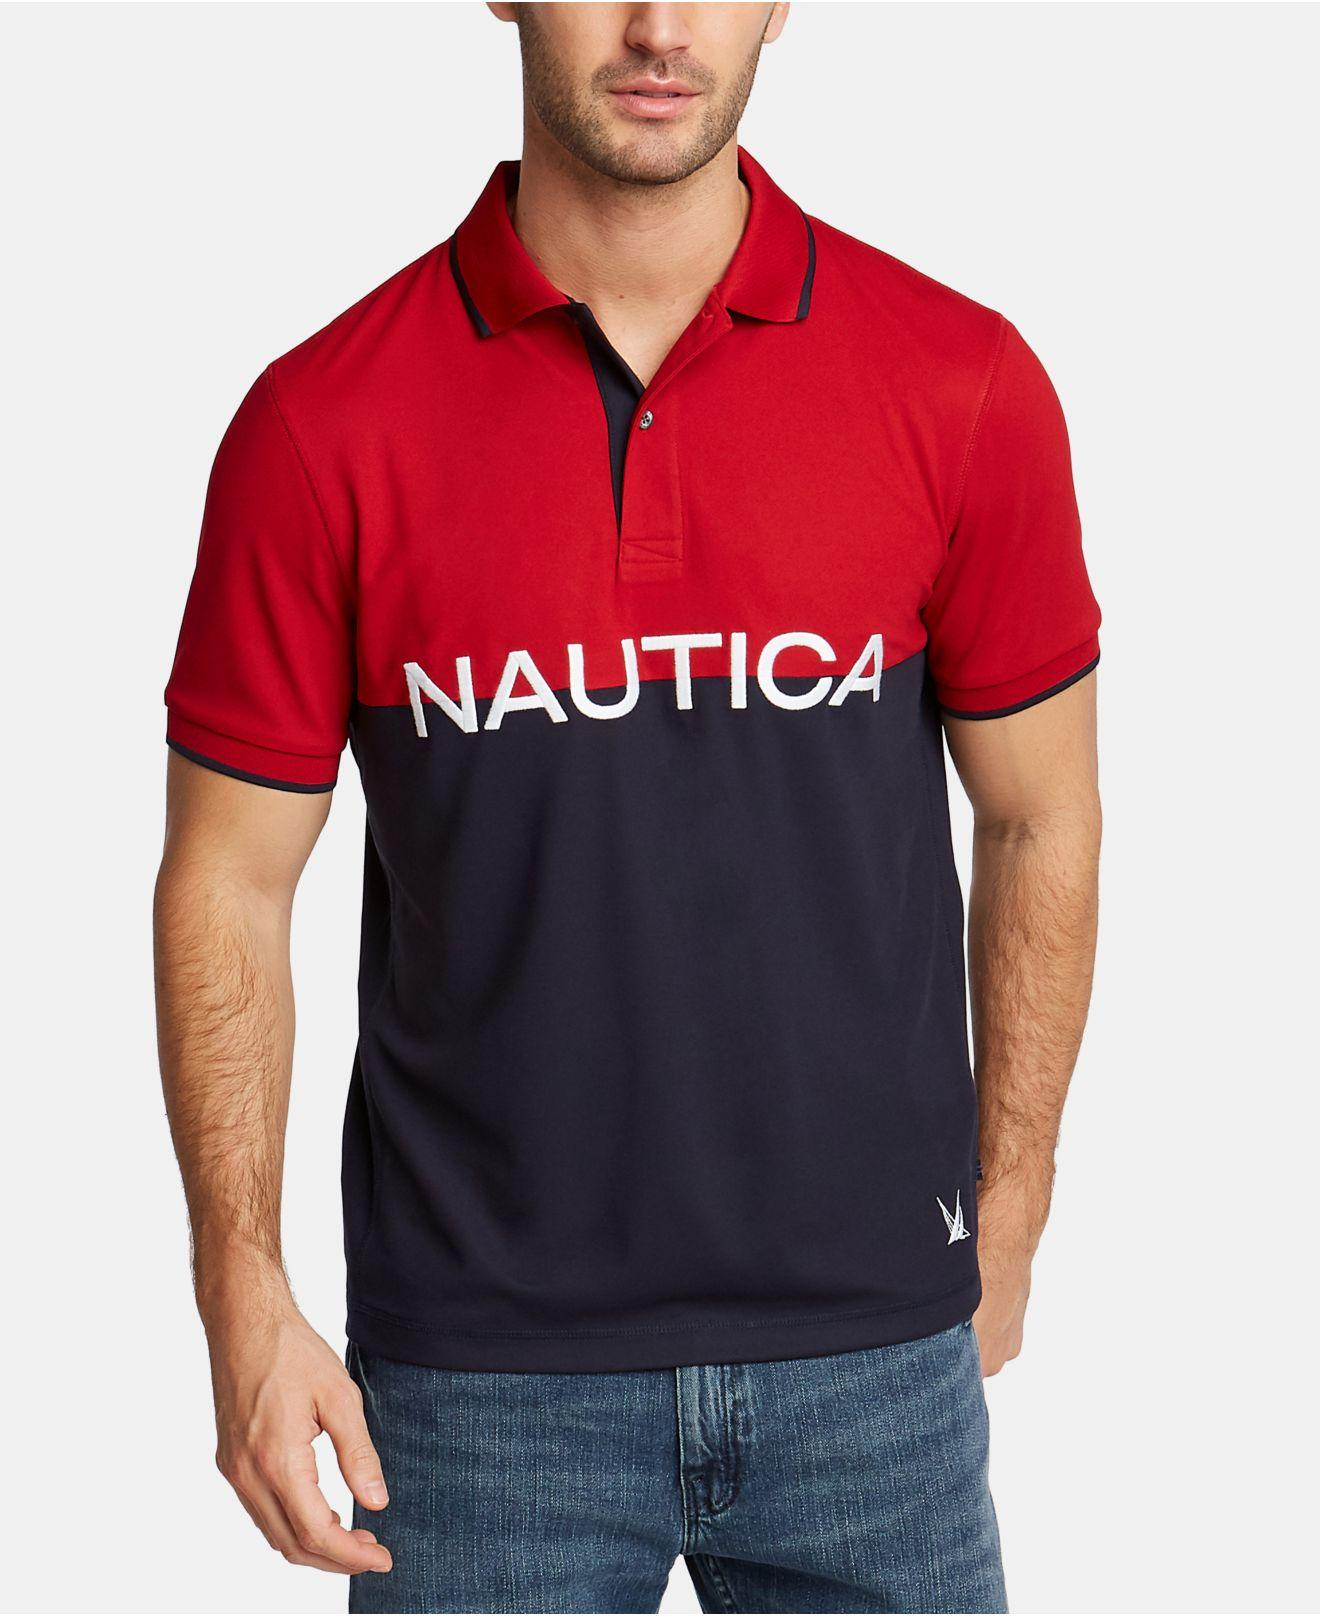 bcc9cb697 Mens Polo Shirts Macys – EDGE Engineering and Consulting Limited